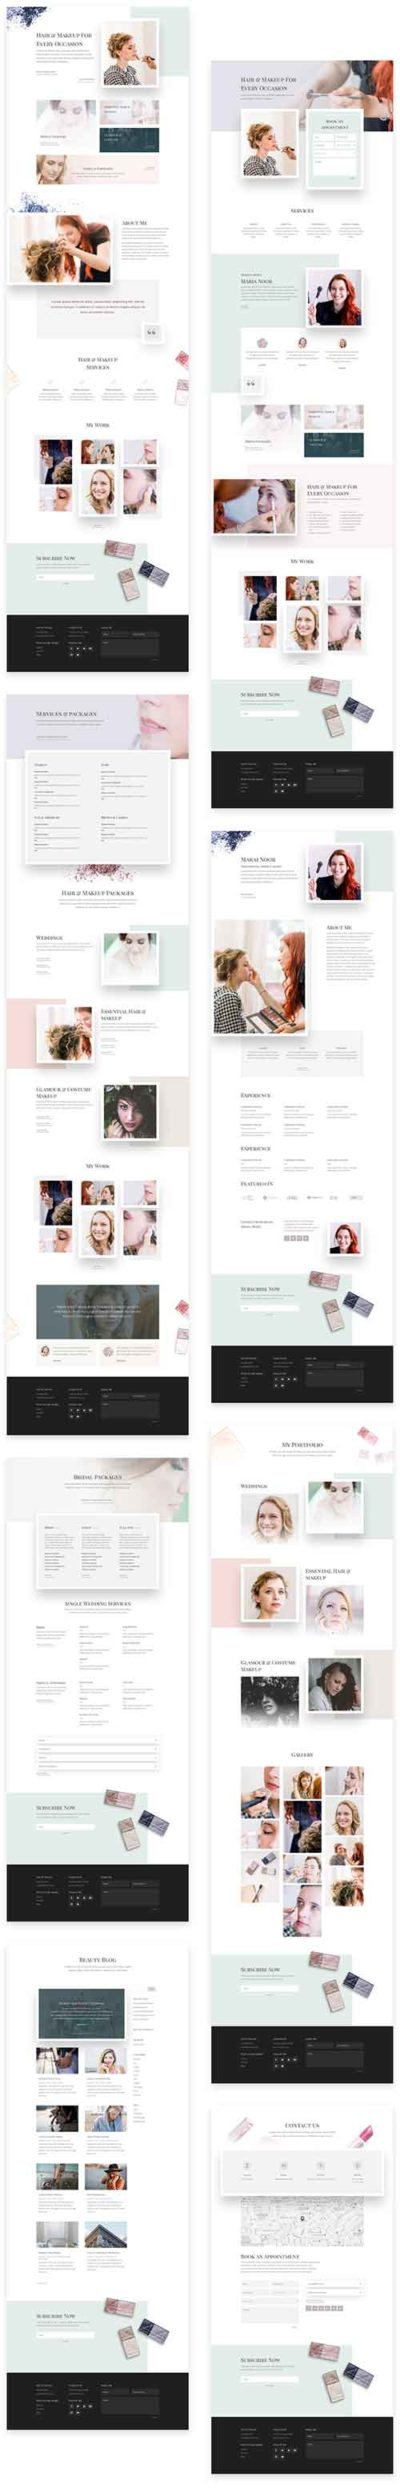 make-up beauty layout pack